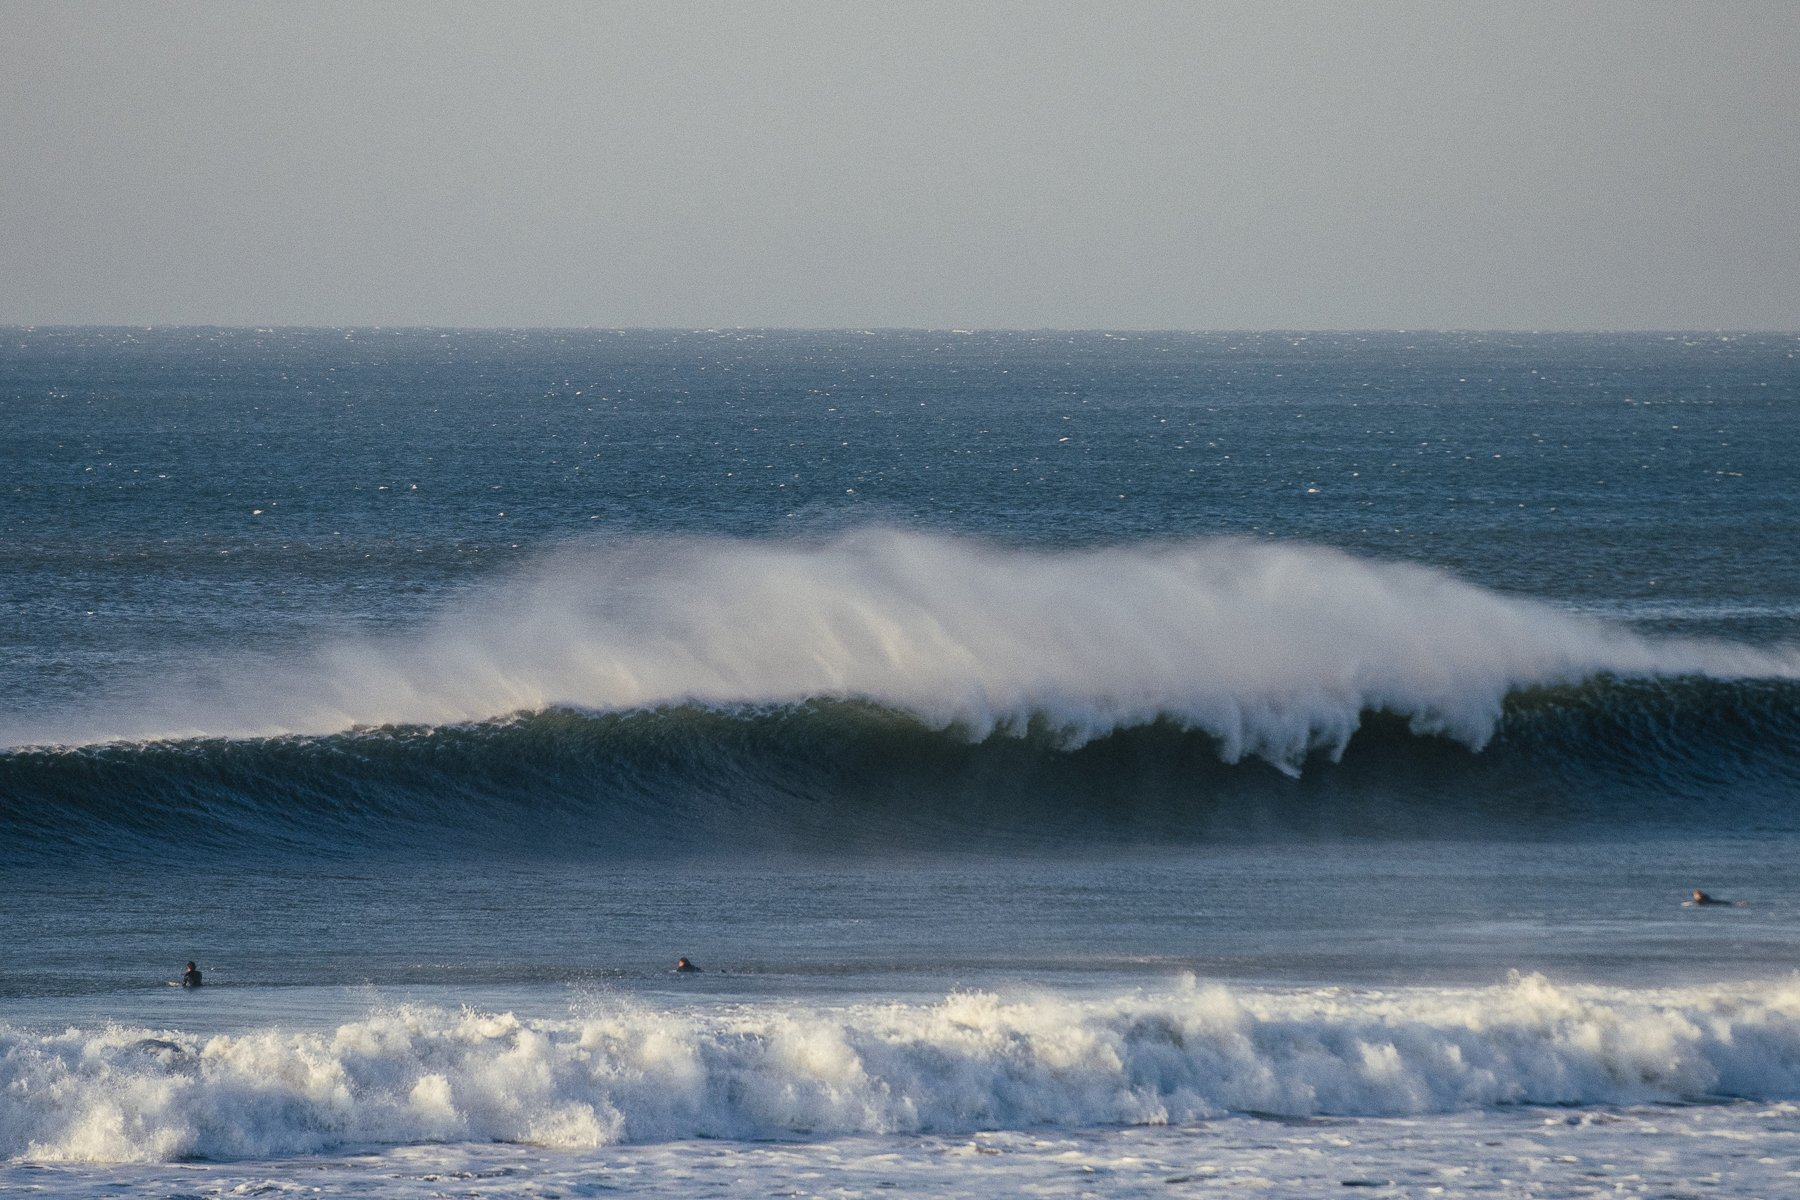 Francesco Foroni - Herography's photo of Putsborough